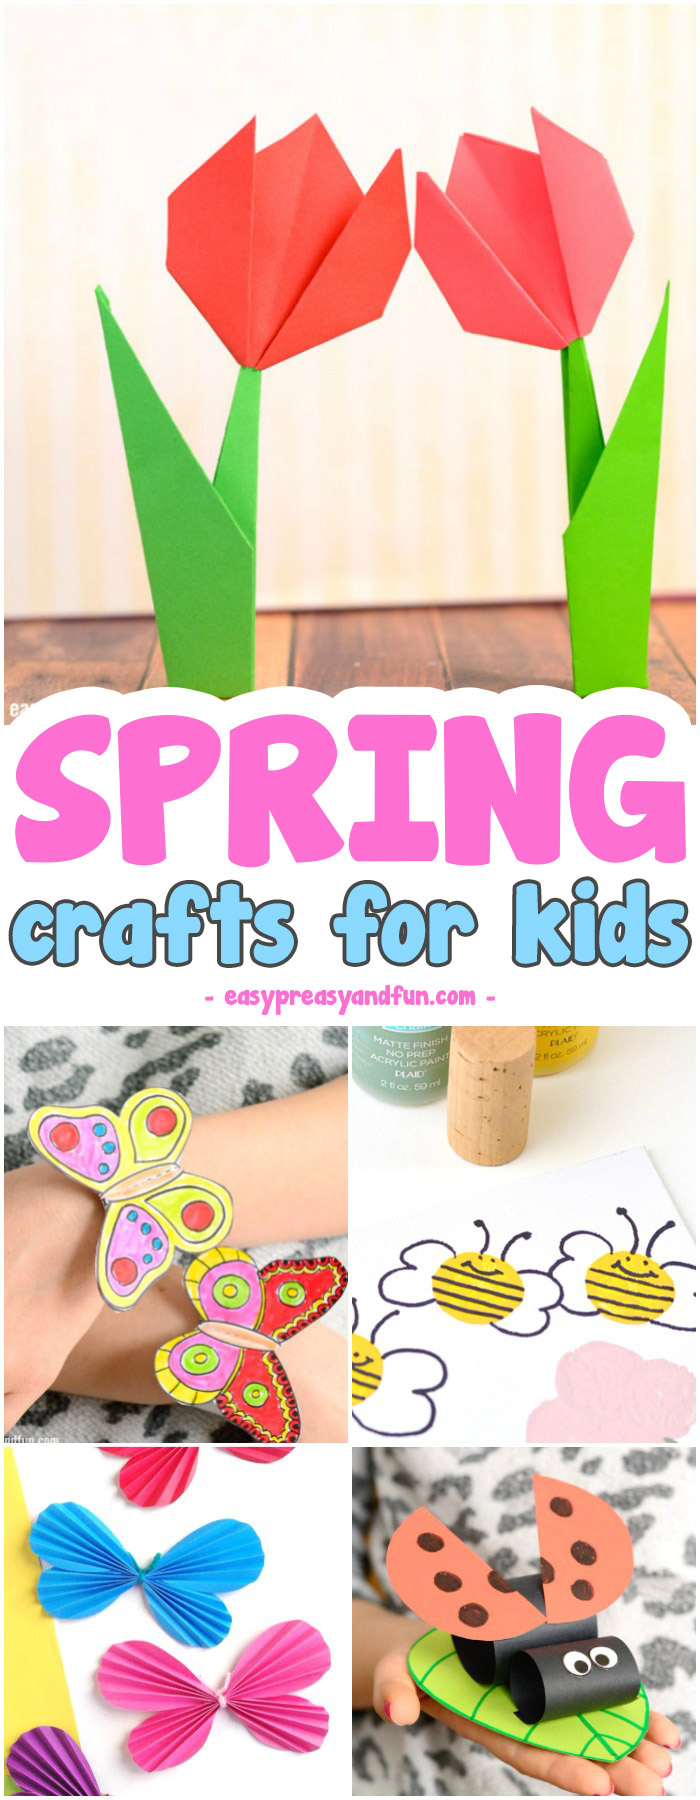 Spring Crafts For Kids  Art And Craft Project Ideas For. Backyard Graduation Party Ideas Pinterest. Kitchen Storage Ideas Small Kitchens. Photo Reflection Ideas. Kitchen Renovation On A Budget Australia. House Ideas Style. Row Home Kitchen Ideas. Ideas For Decorating A Small Kitchen. Office Buffet Ideas